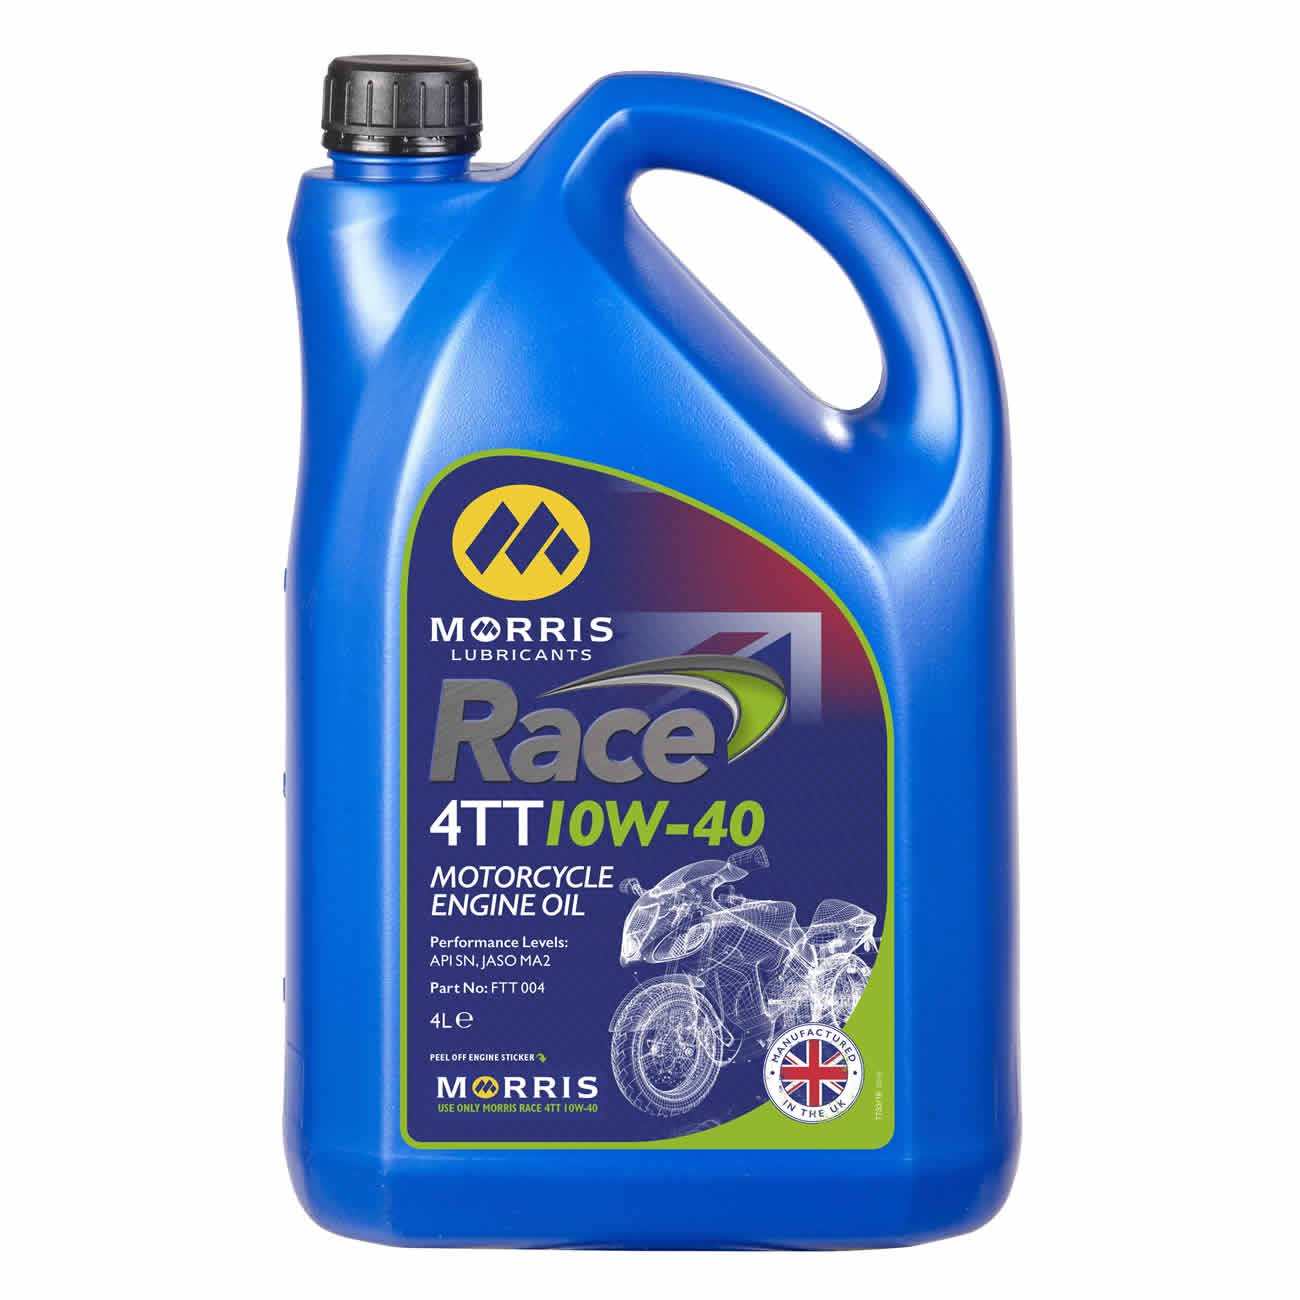 Race 4TT 10W-40, Engine Oil, Morris Lubricants - Averys Motorcycles